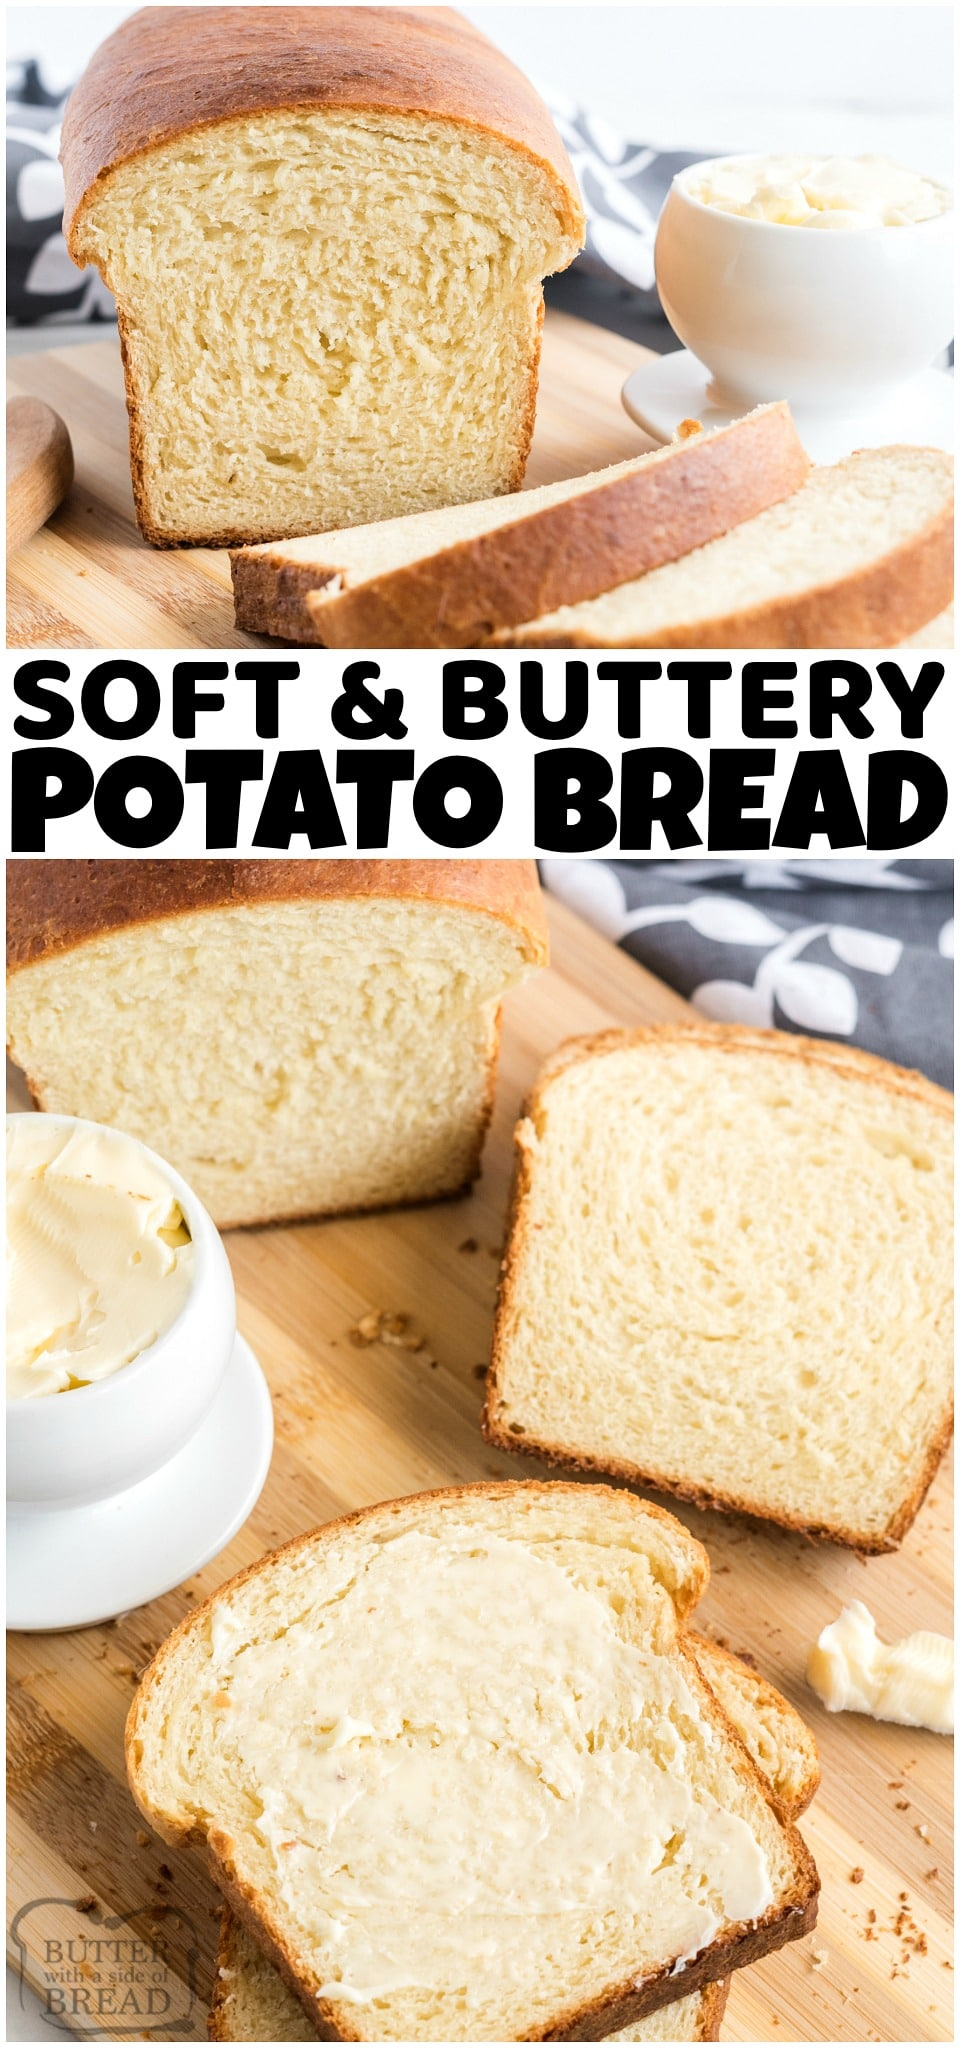 Potato Bread made with mashed potatoes, butter, milk, flour, eggs, and yeast. Potato Bread recipe is a family favorite that's easy to make & has a fantastic homestyle flavor! #bread #homemade #baking #potatoes #mashedpotatoes #potatobread #recipe from BUTTER WITH A SIDE OF BREAD